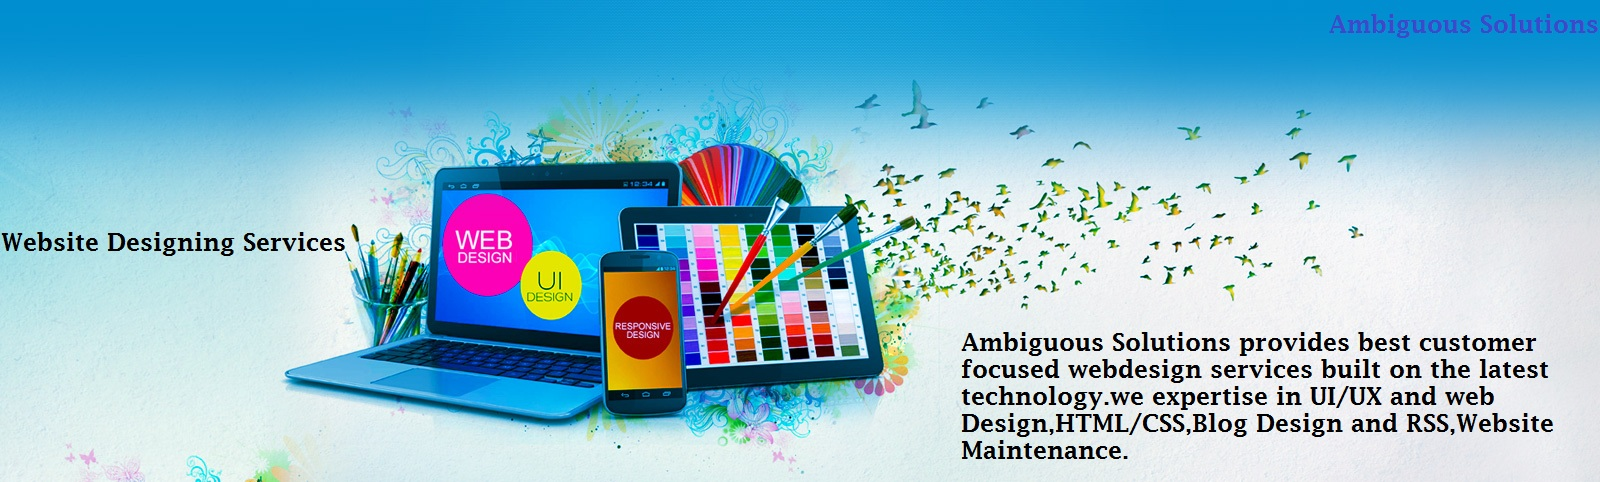 Ambiguous Solutions - website design services provider in India